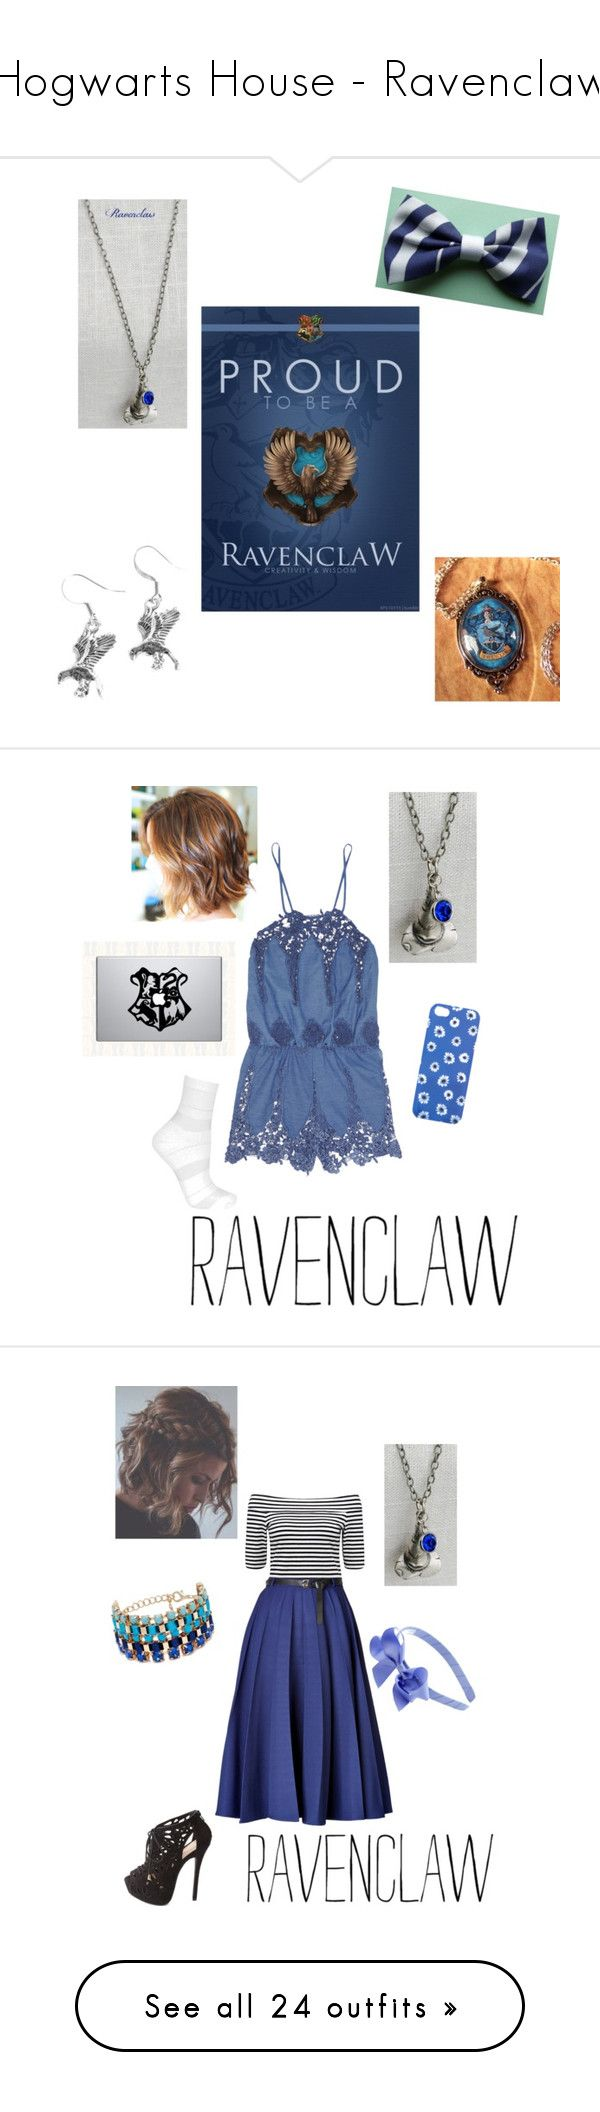 """""""Hogwarts House - Ravenclaw"""" by briony-jae ❤ liked on Polyvore featuring harry potter, ravenclaw, hogwarts, fillers, other, backgrounds, quote's, text, doodle and saying"""